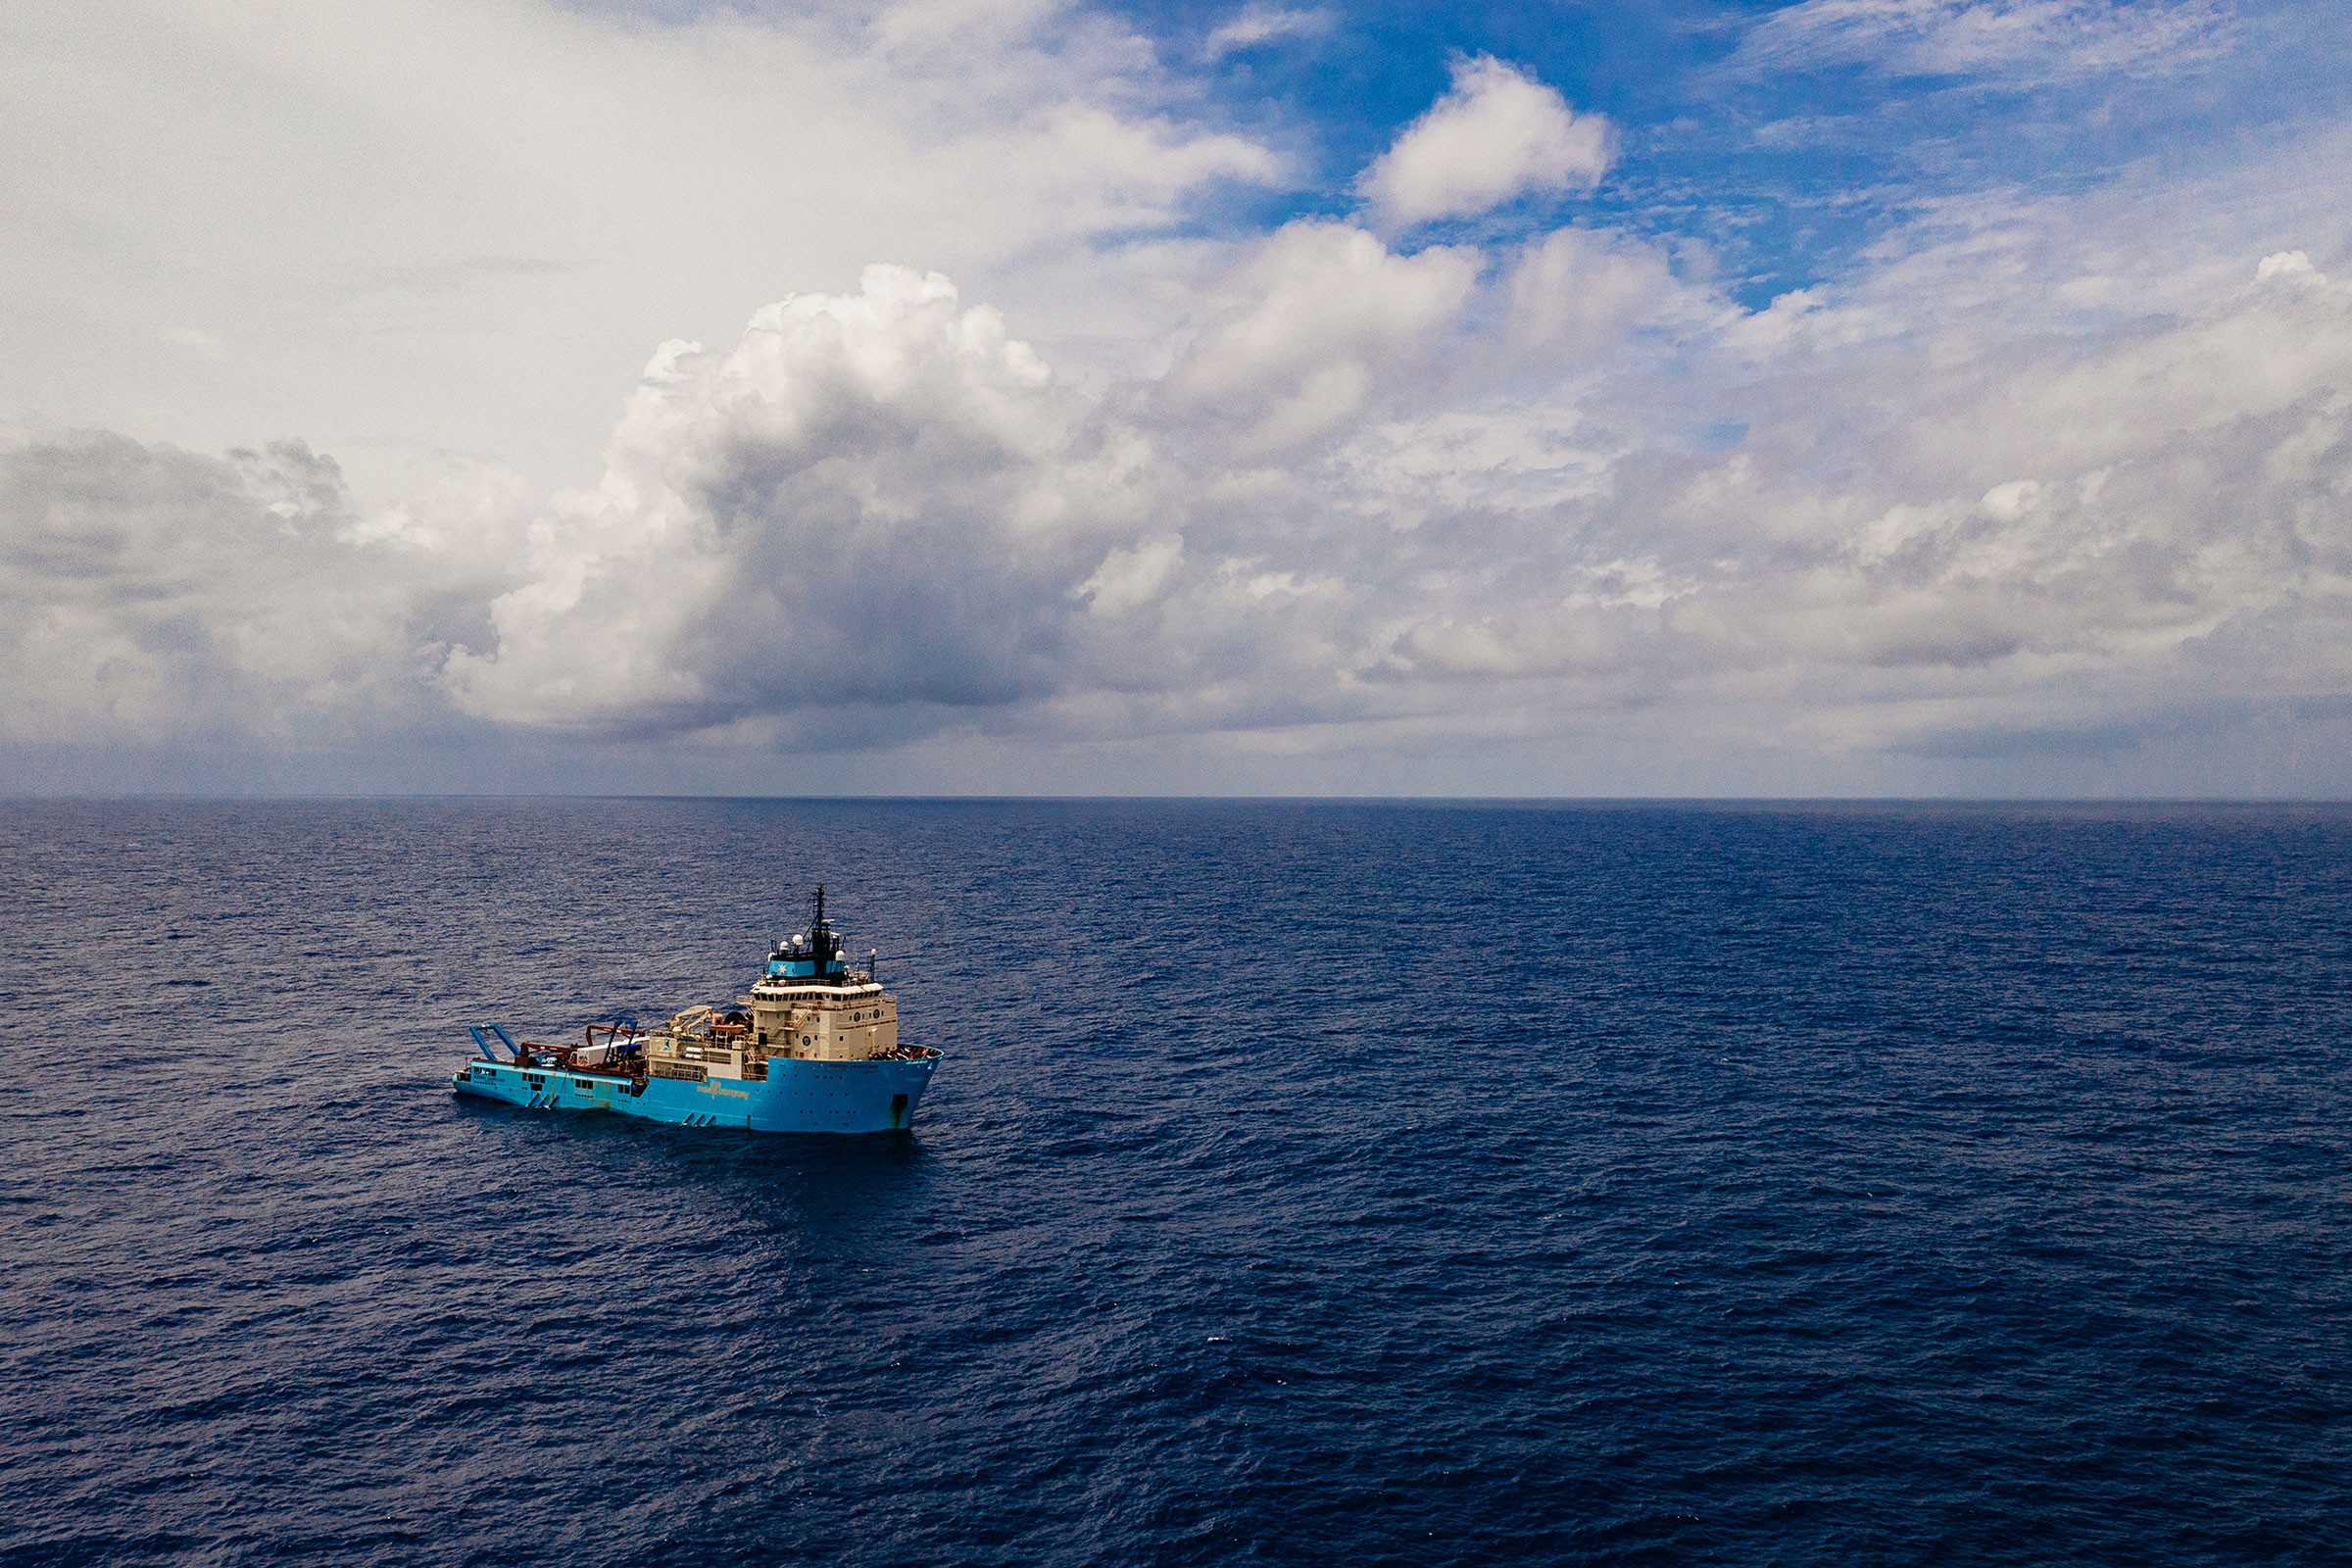 The Metals Company's exploratory vessel, the Maersk Launcher, conducting environmental studies in the CCZ.